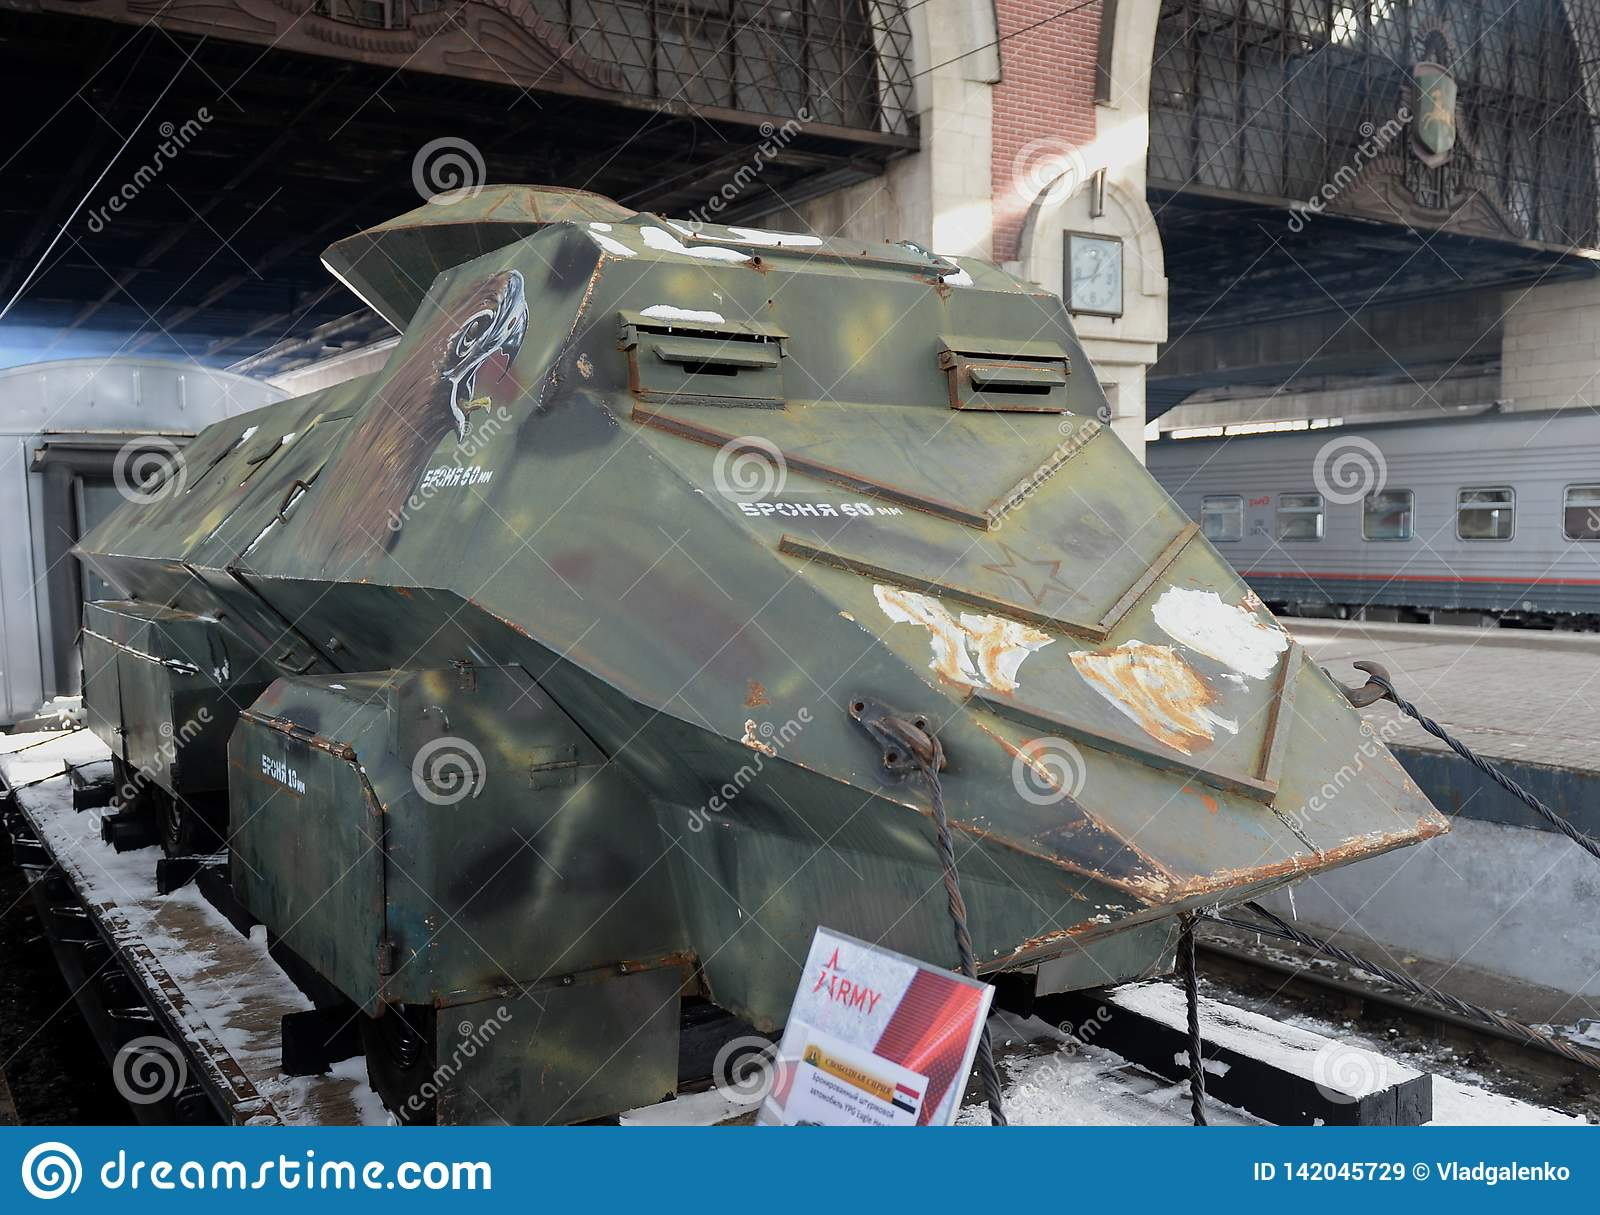 Turkish Armored Assault Vehicle Ypg Eagle Head Captured From Terrorists In Syria Editorial Stock Image Image Of Armor Assault 142045729